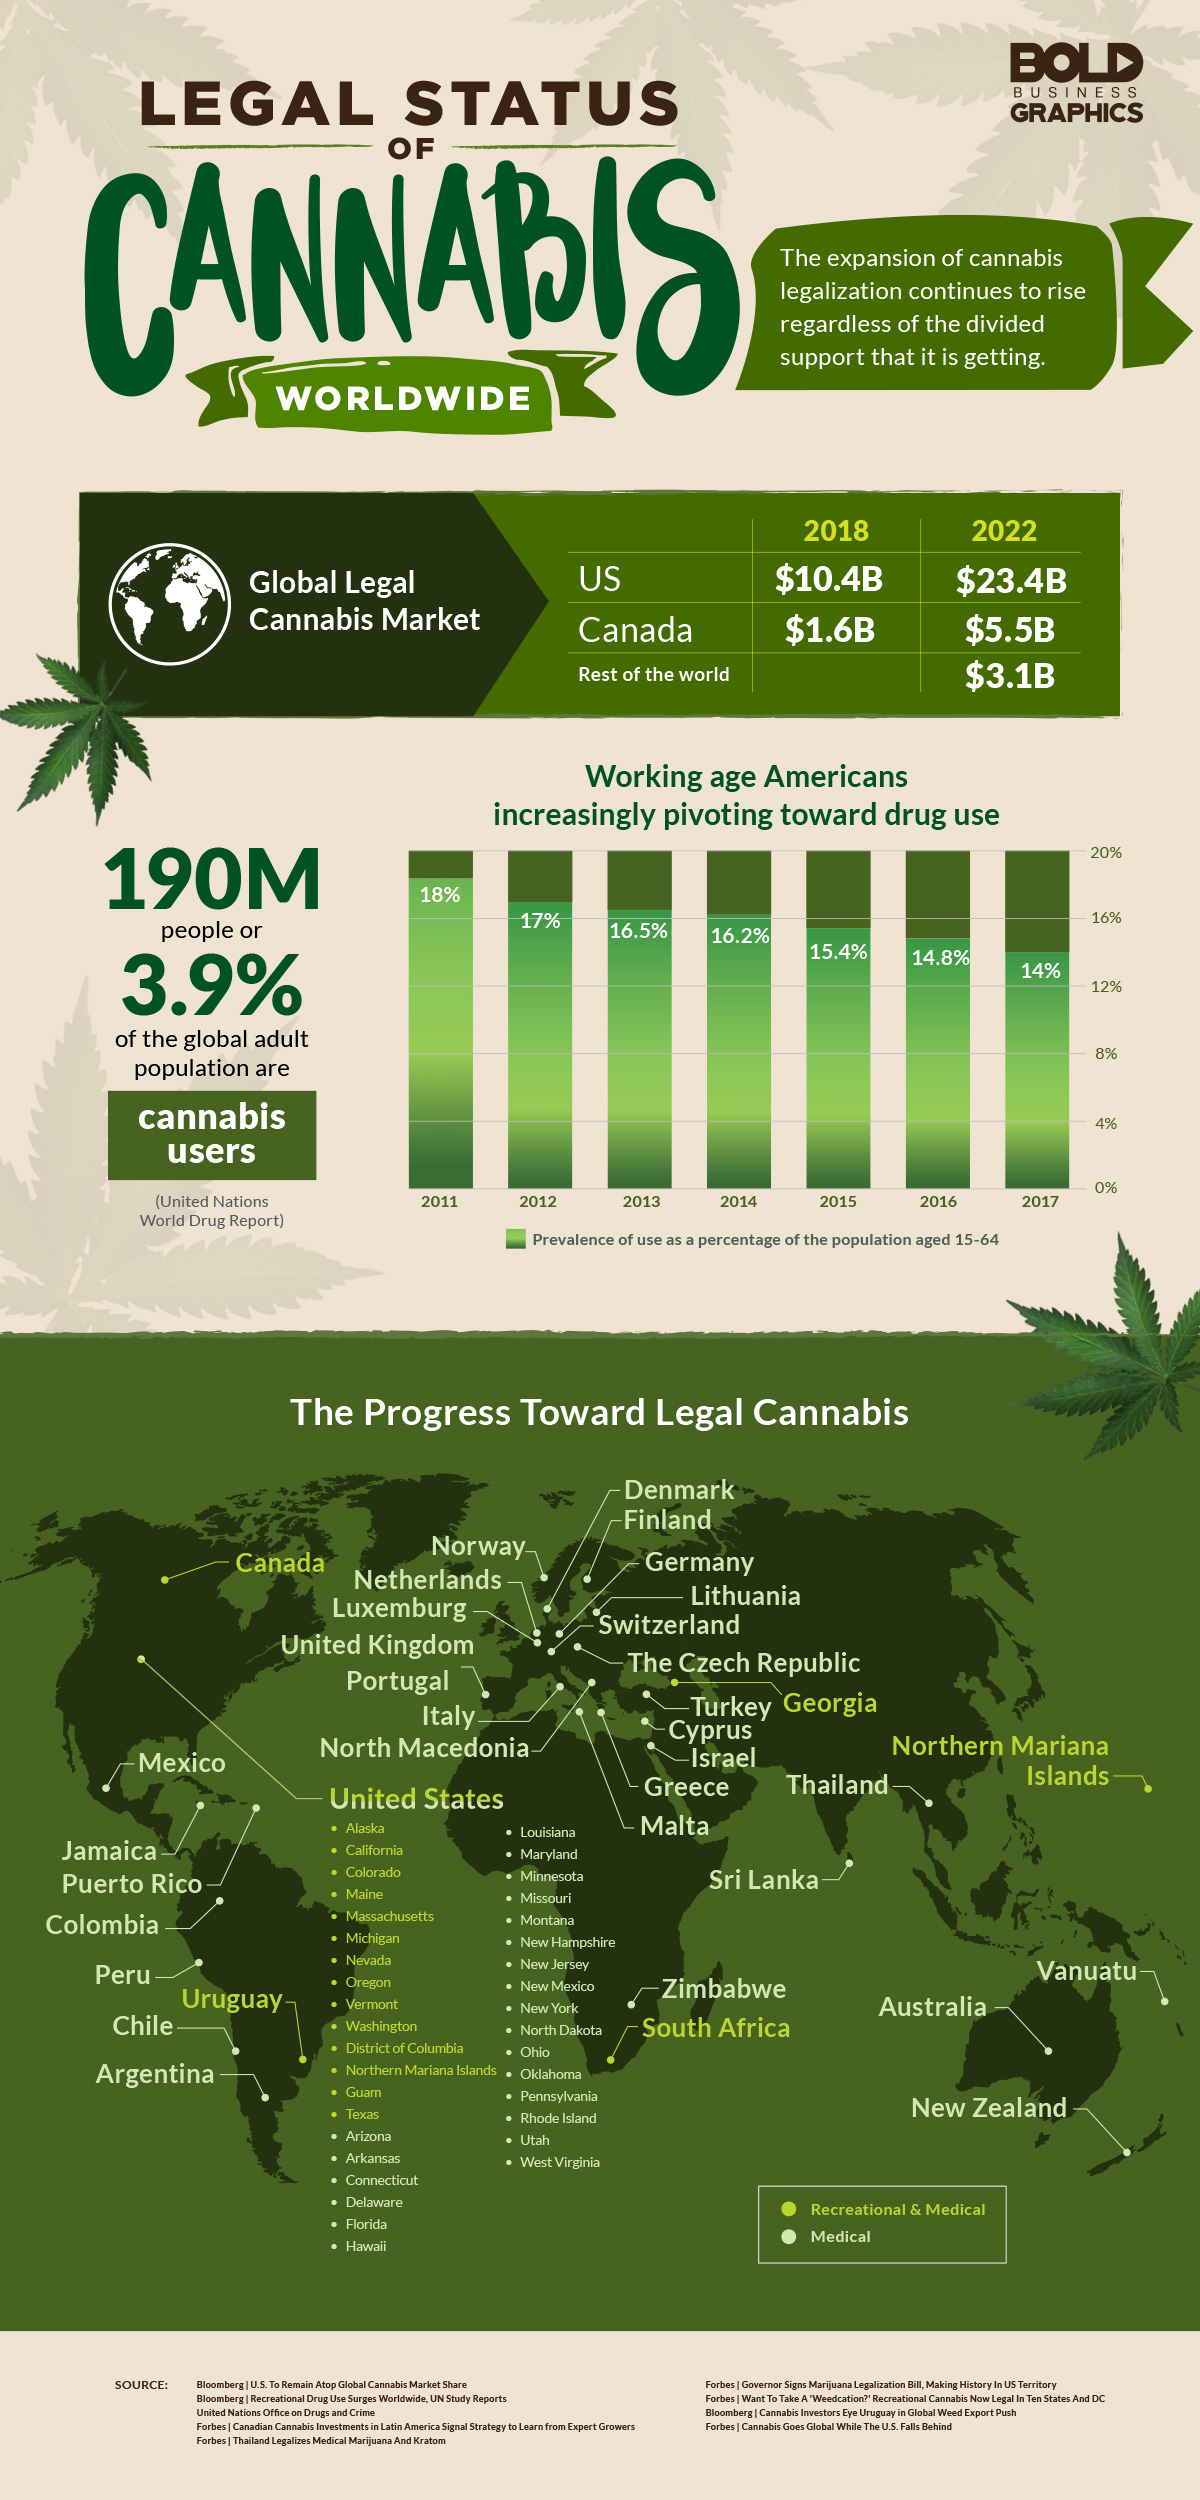 Legal Status Of Cannabis World-wide